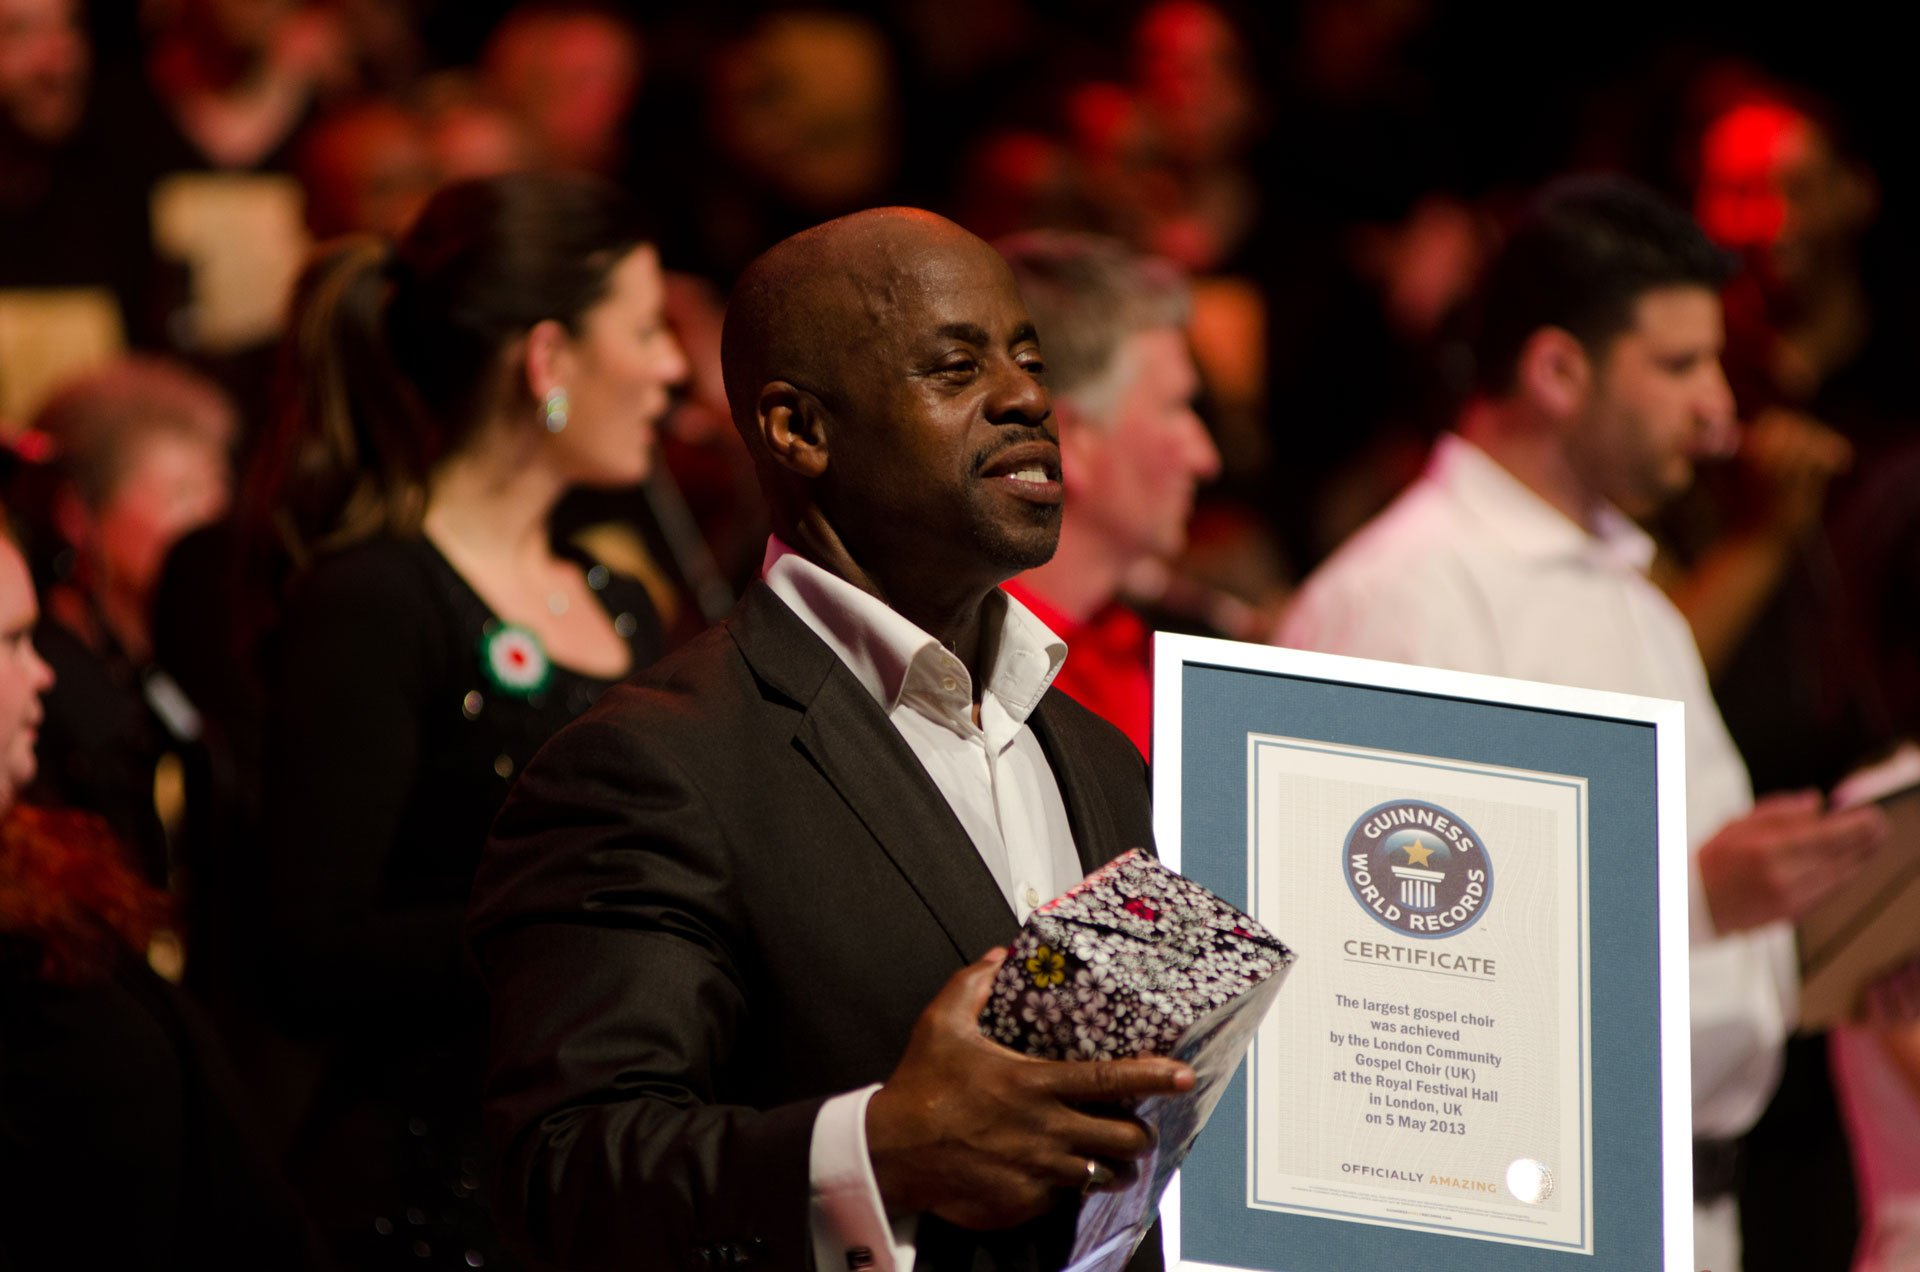 Bazil Meade MBE, Guinness World Record